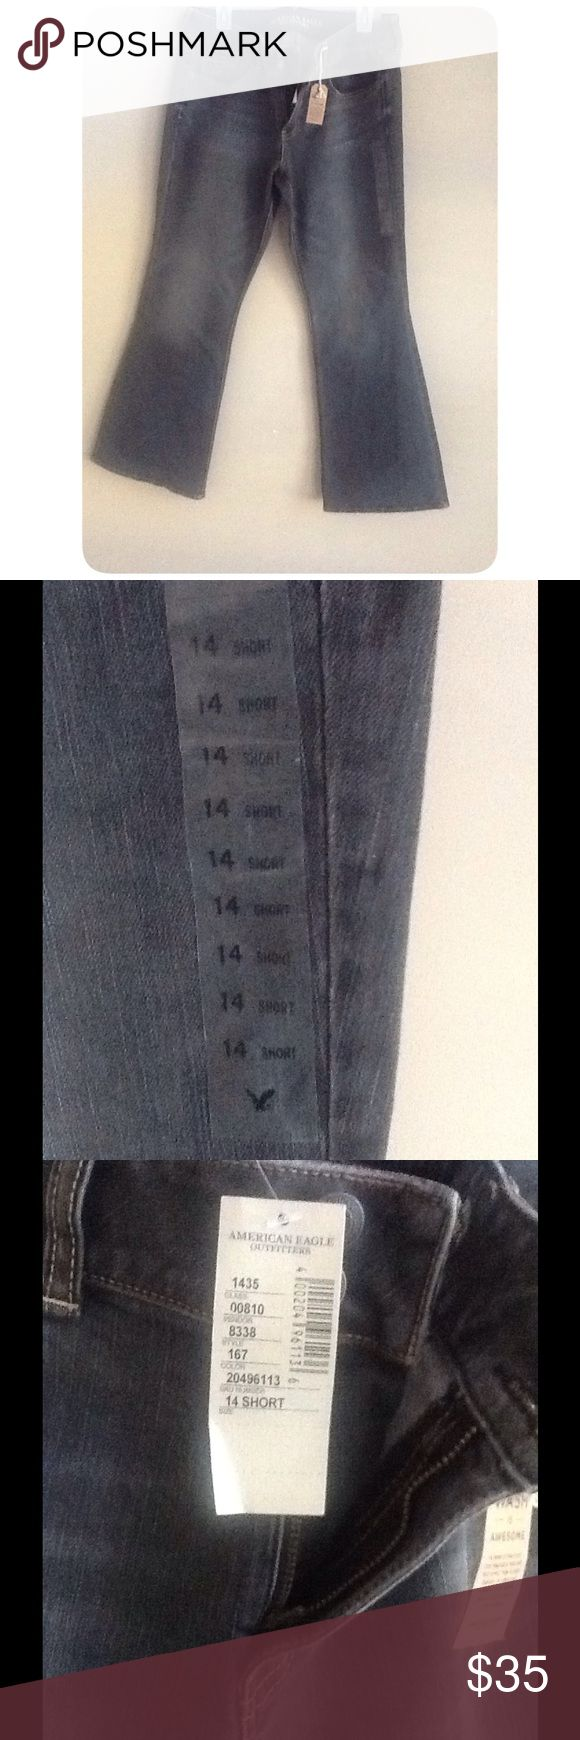 American Eagle Artist Jeans Size 14 Short These are American Eagle Artist Jeans. They are for Short females!! They are a size 14 Short!! They are New with Tags!! They would be Great for the Winter Weather!! American Eagle Outfitters Jeans Flare & Wide Leg